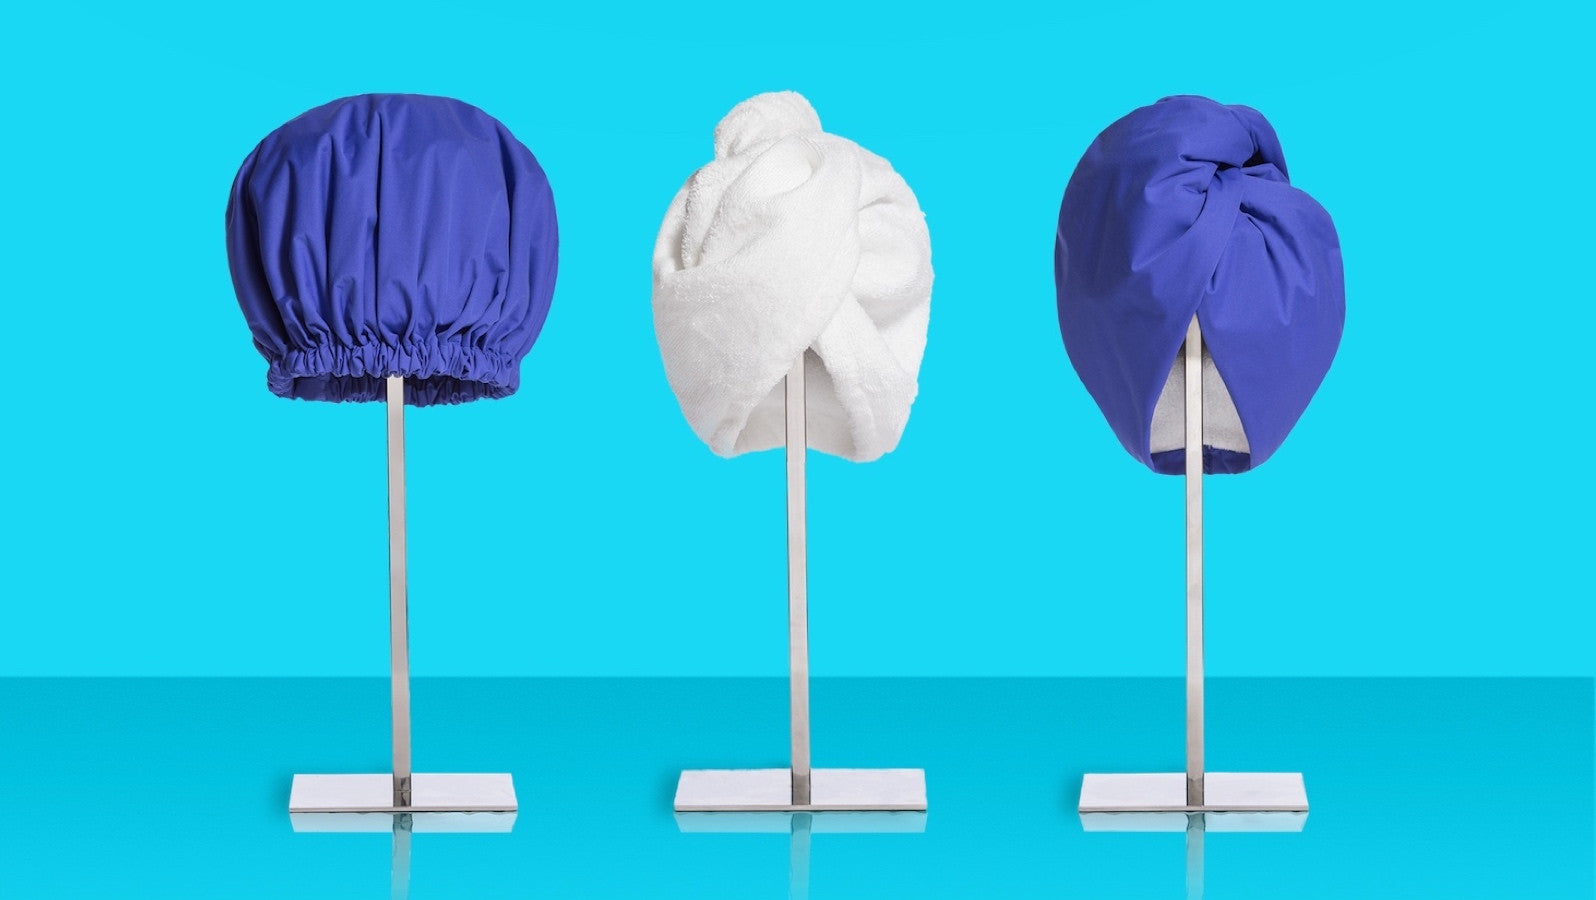 Turbella shower gear collection: 3 high performance luxury shower caps, hair-drying wrap and waterproof shower turban on blue pedestal